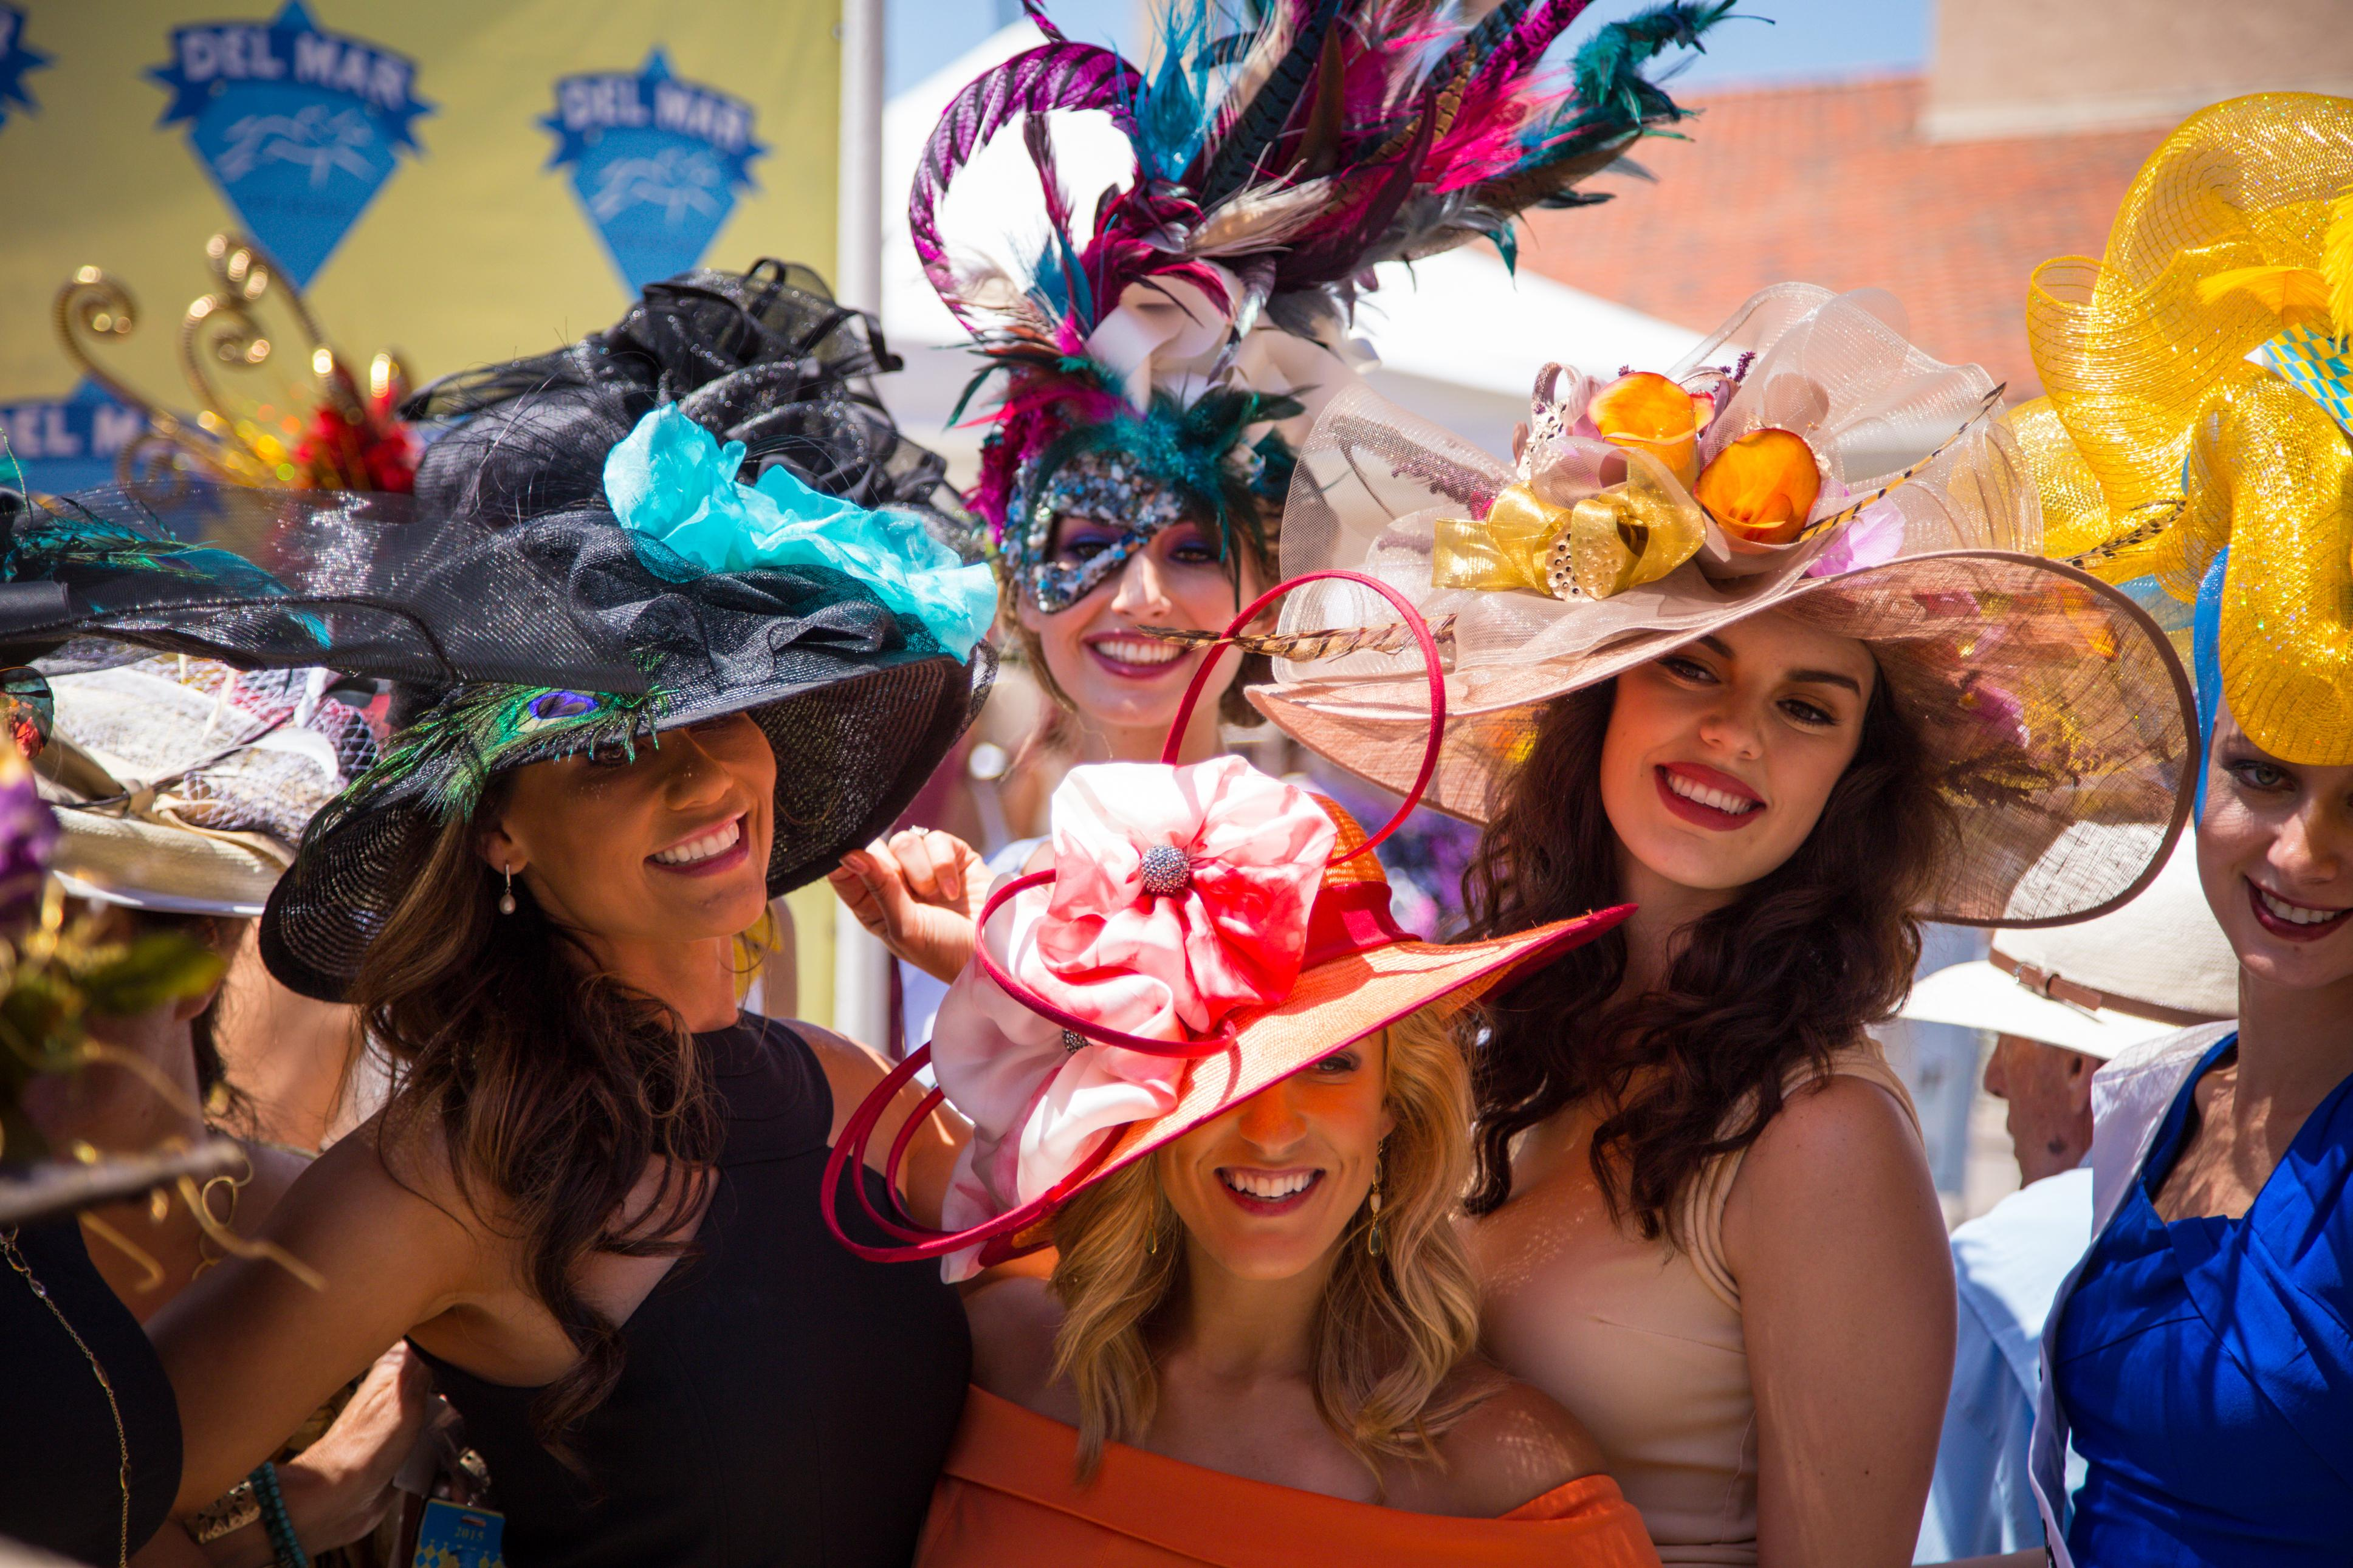 Hats from Del Mar's contest.